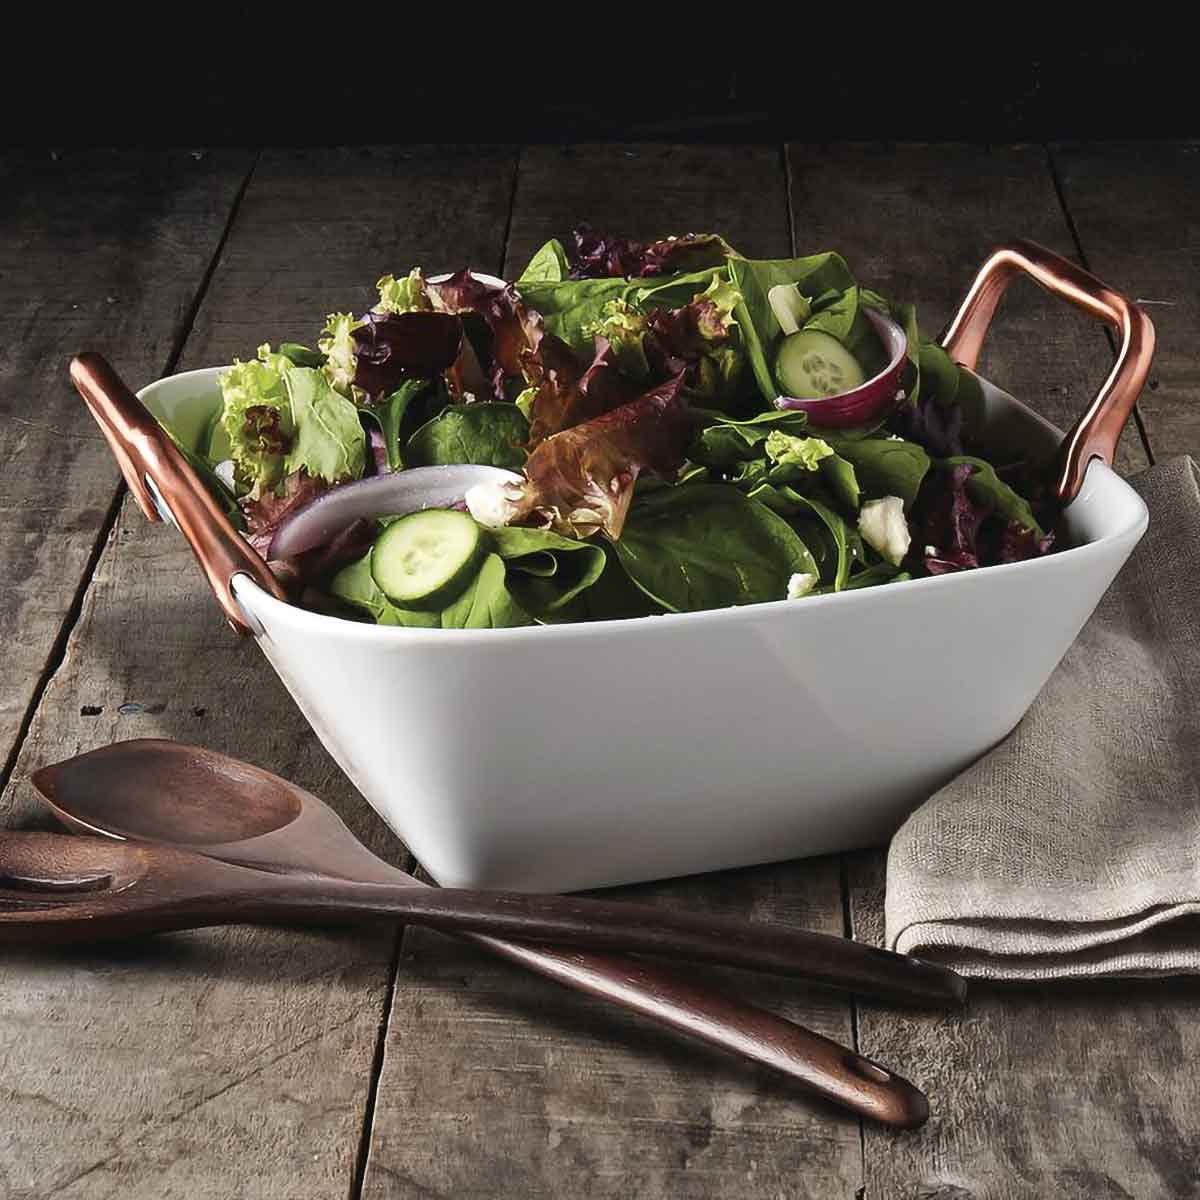 Romford Square Serving Bowl shown with salad on wood table with wood serving utensils.